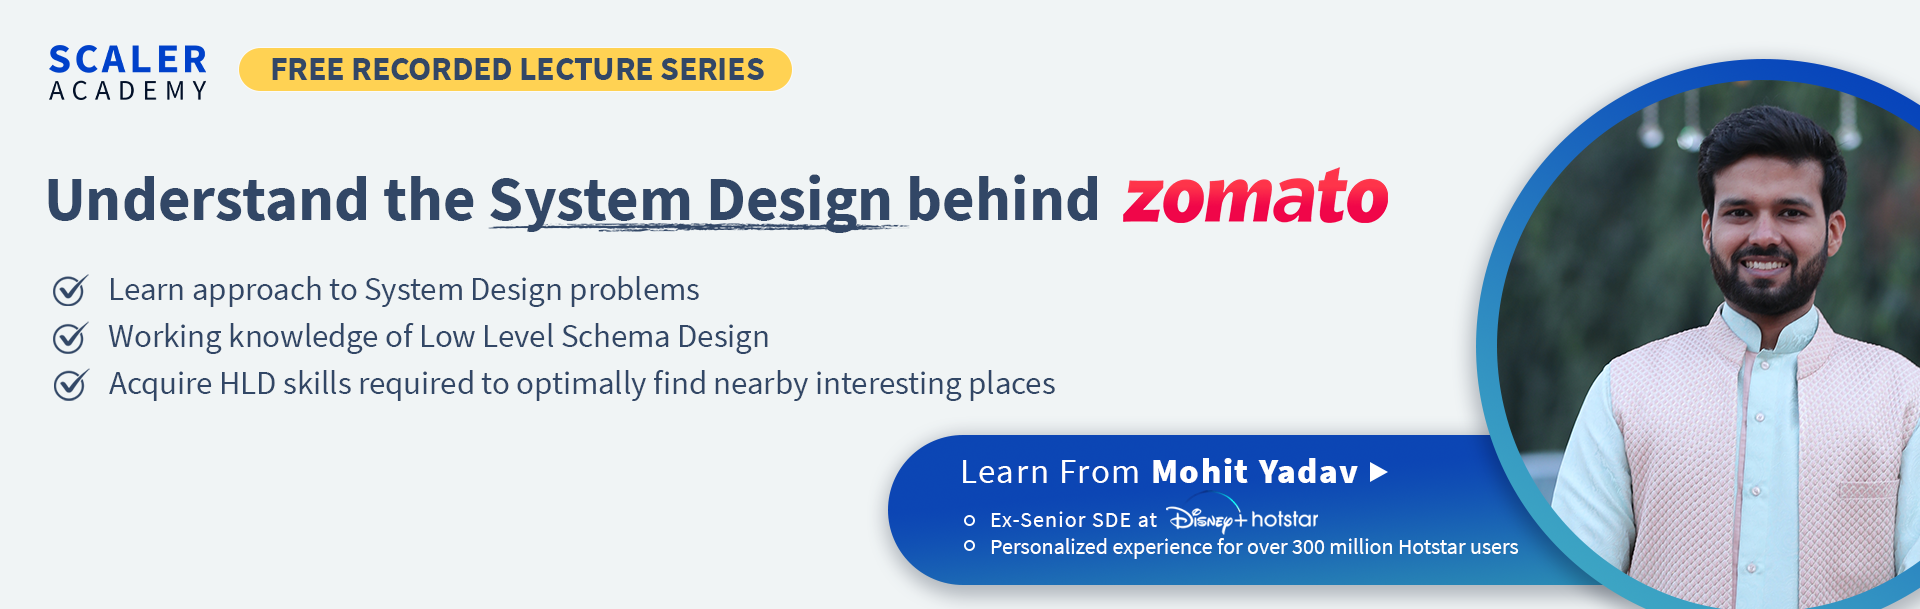 Understand the System Design behind Zomato [Recorded Lecture Series]